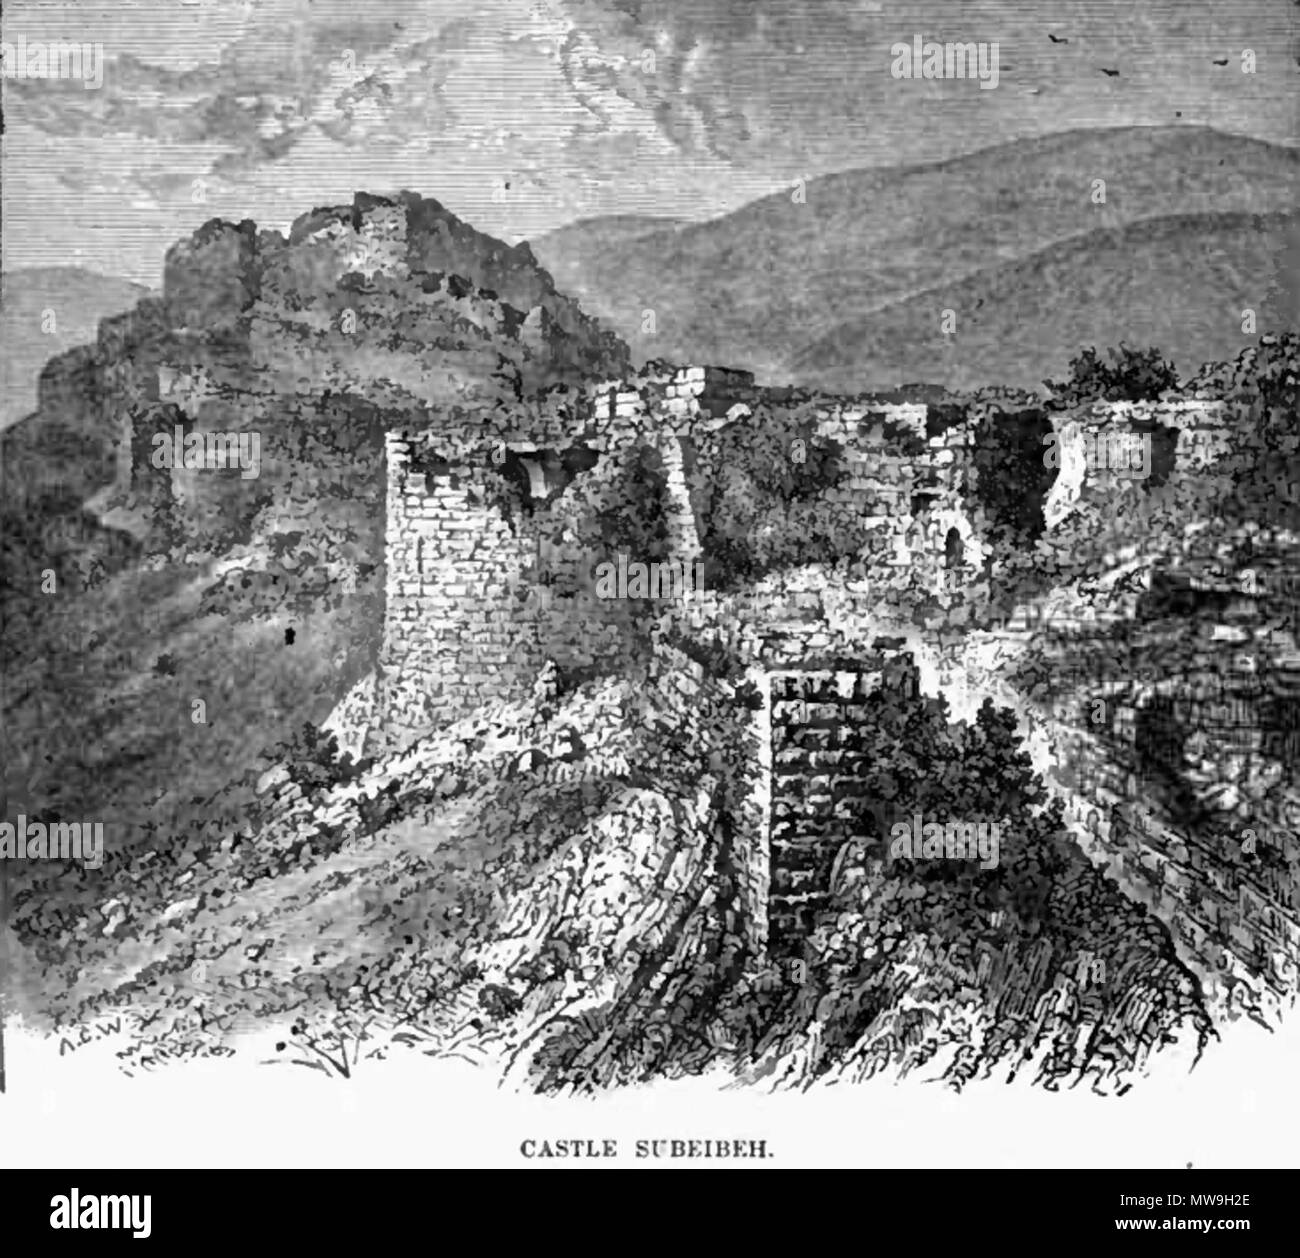 . English: Nimrod Fortress. al-Subayba. Qala'at Namrud . 1887. Frank S De Hass, 117 Castle subeibeh 1887 - Stock Image